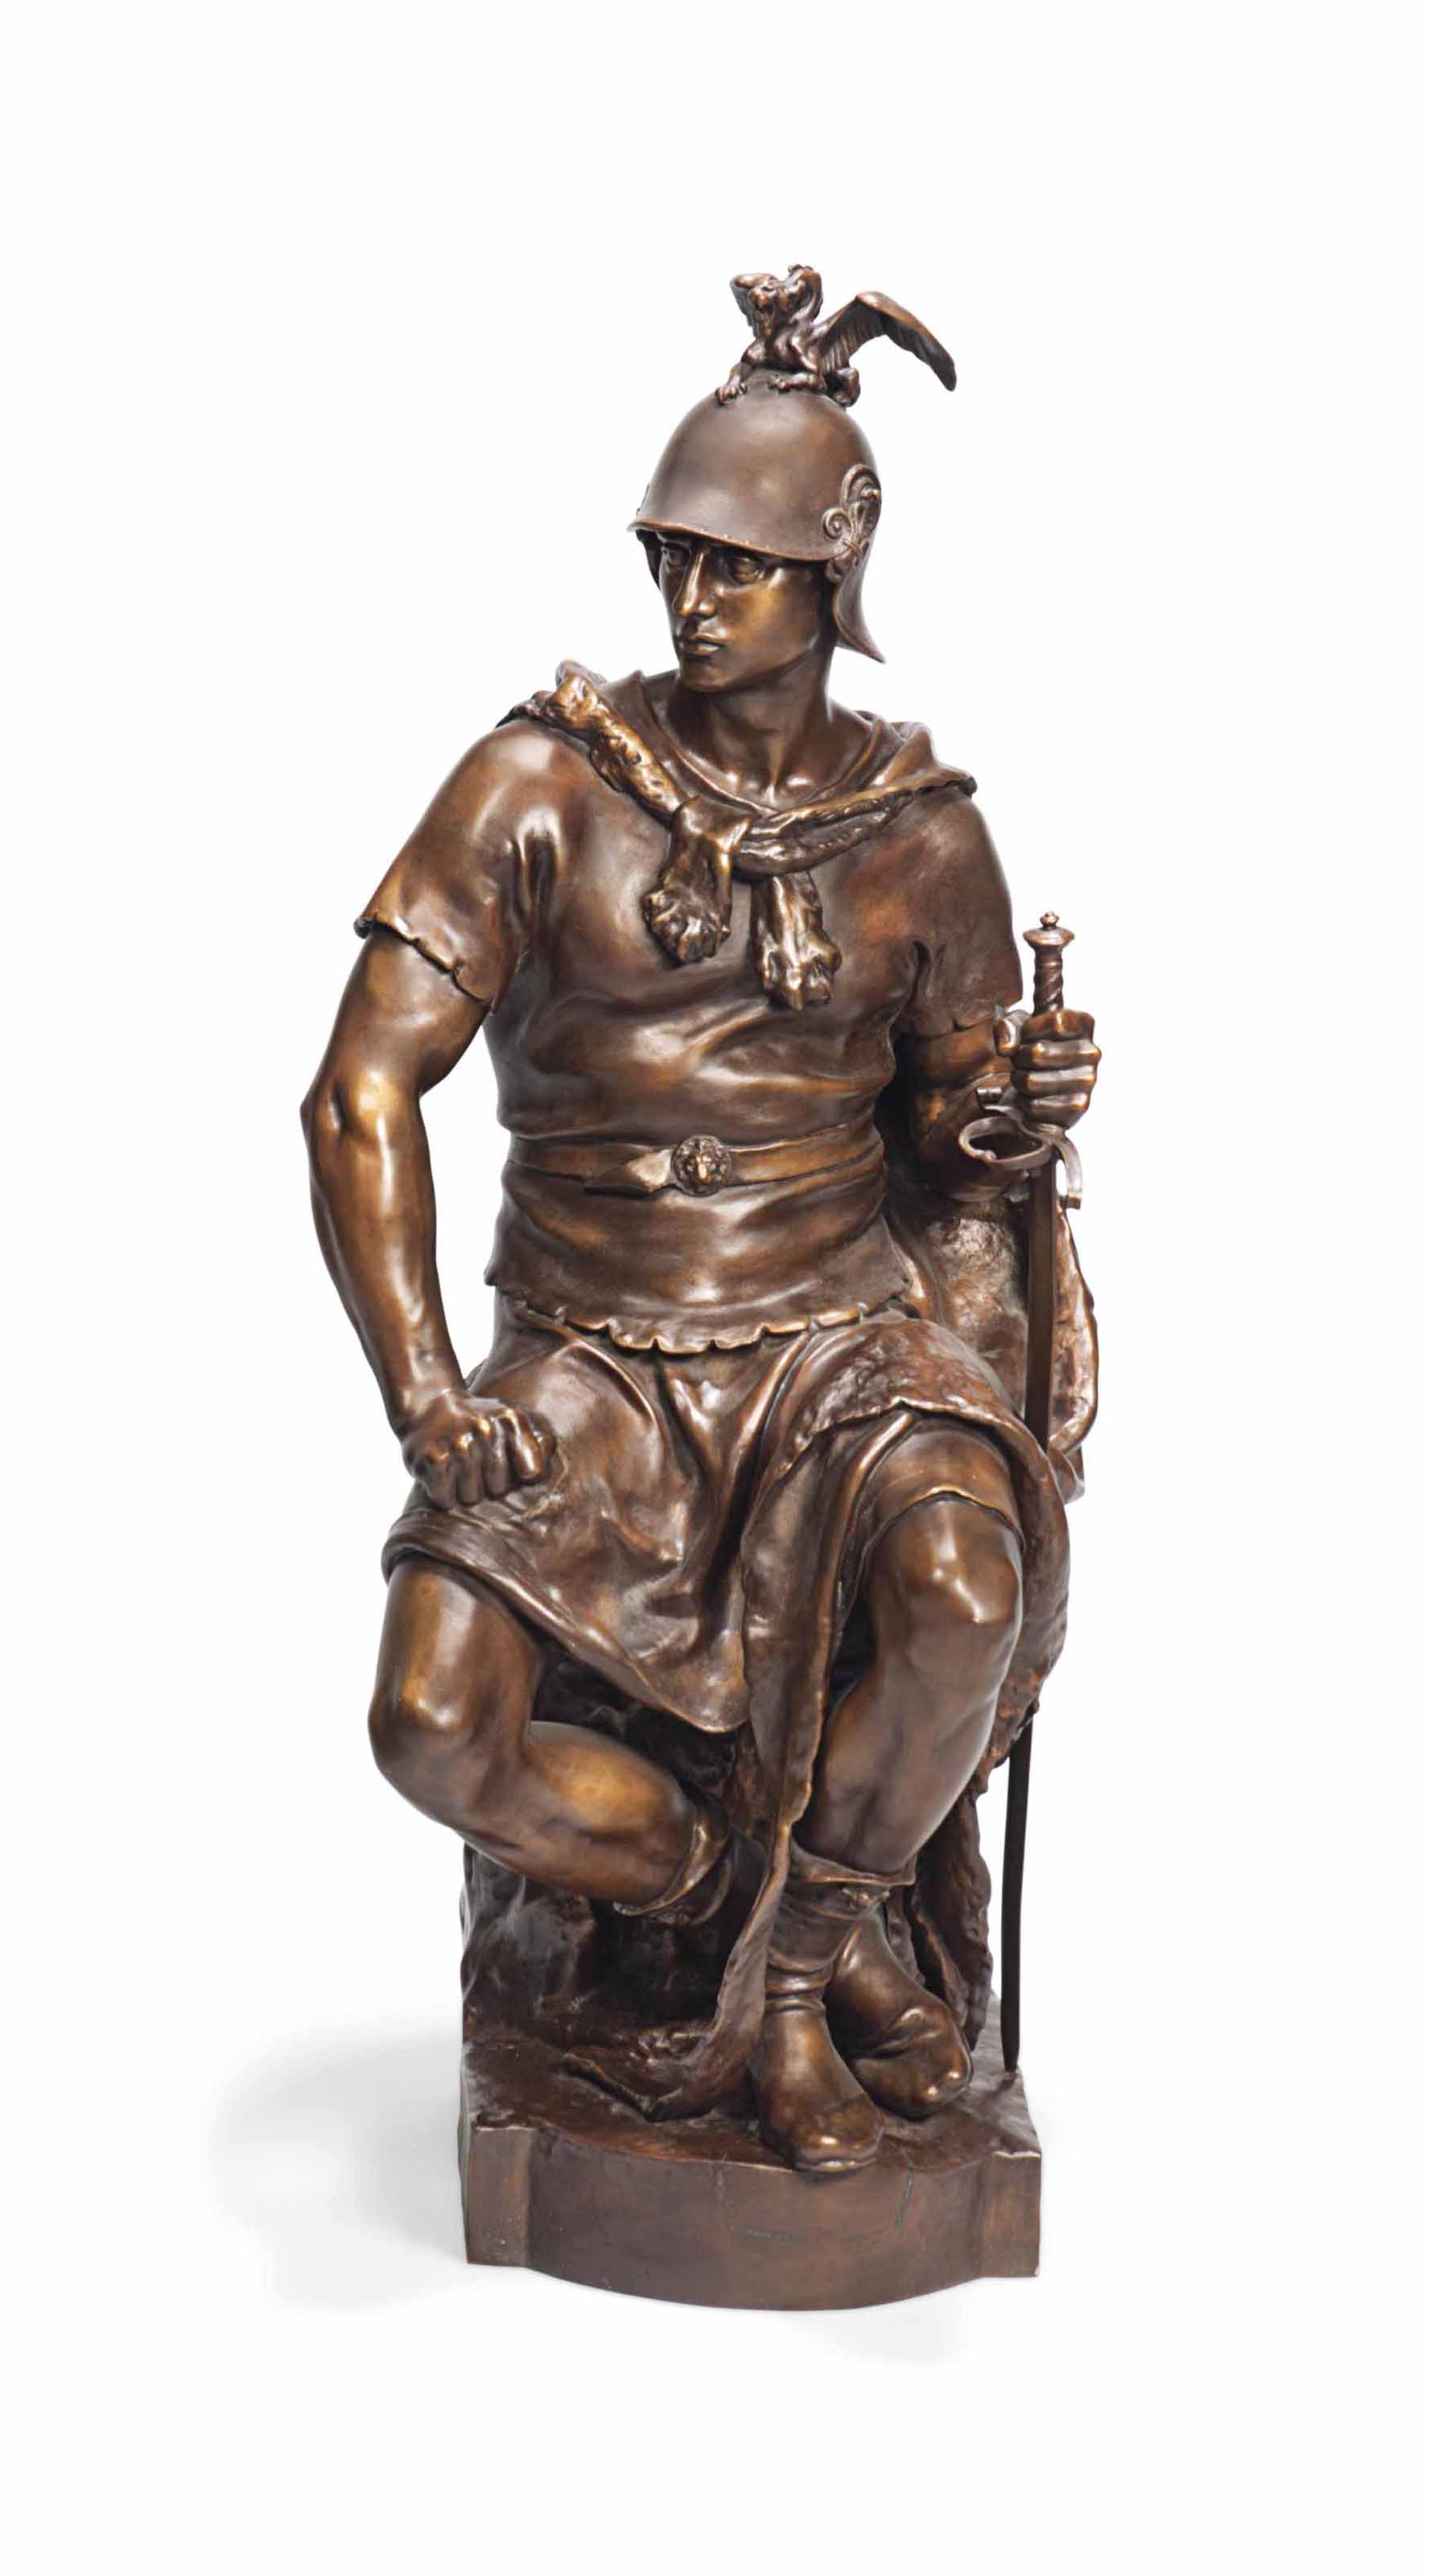 A FRENCH BRONZE MODEL OF 'LE COURAGE MILITAIRE'